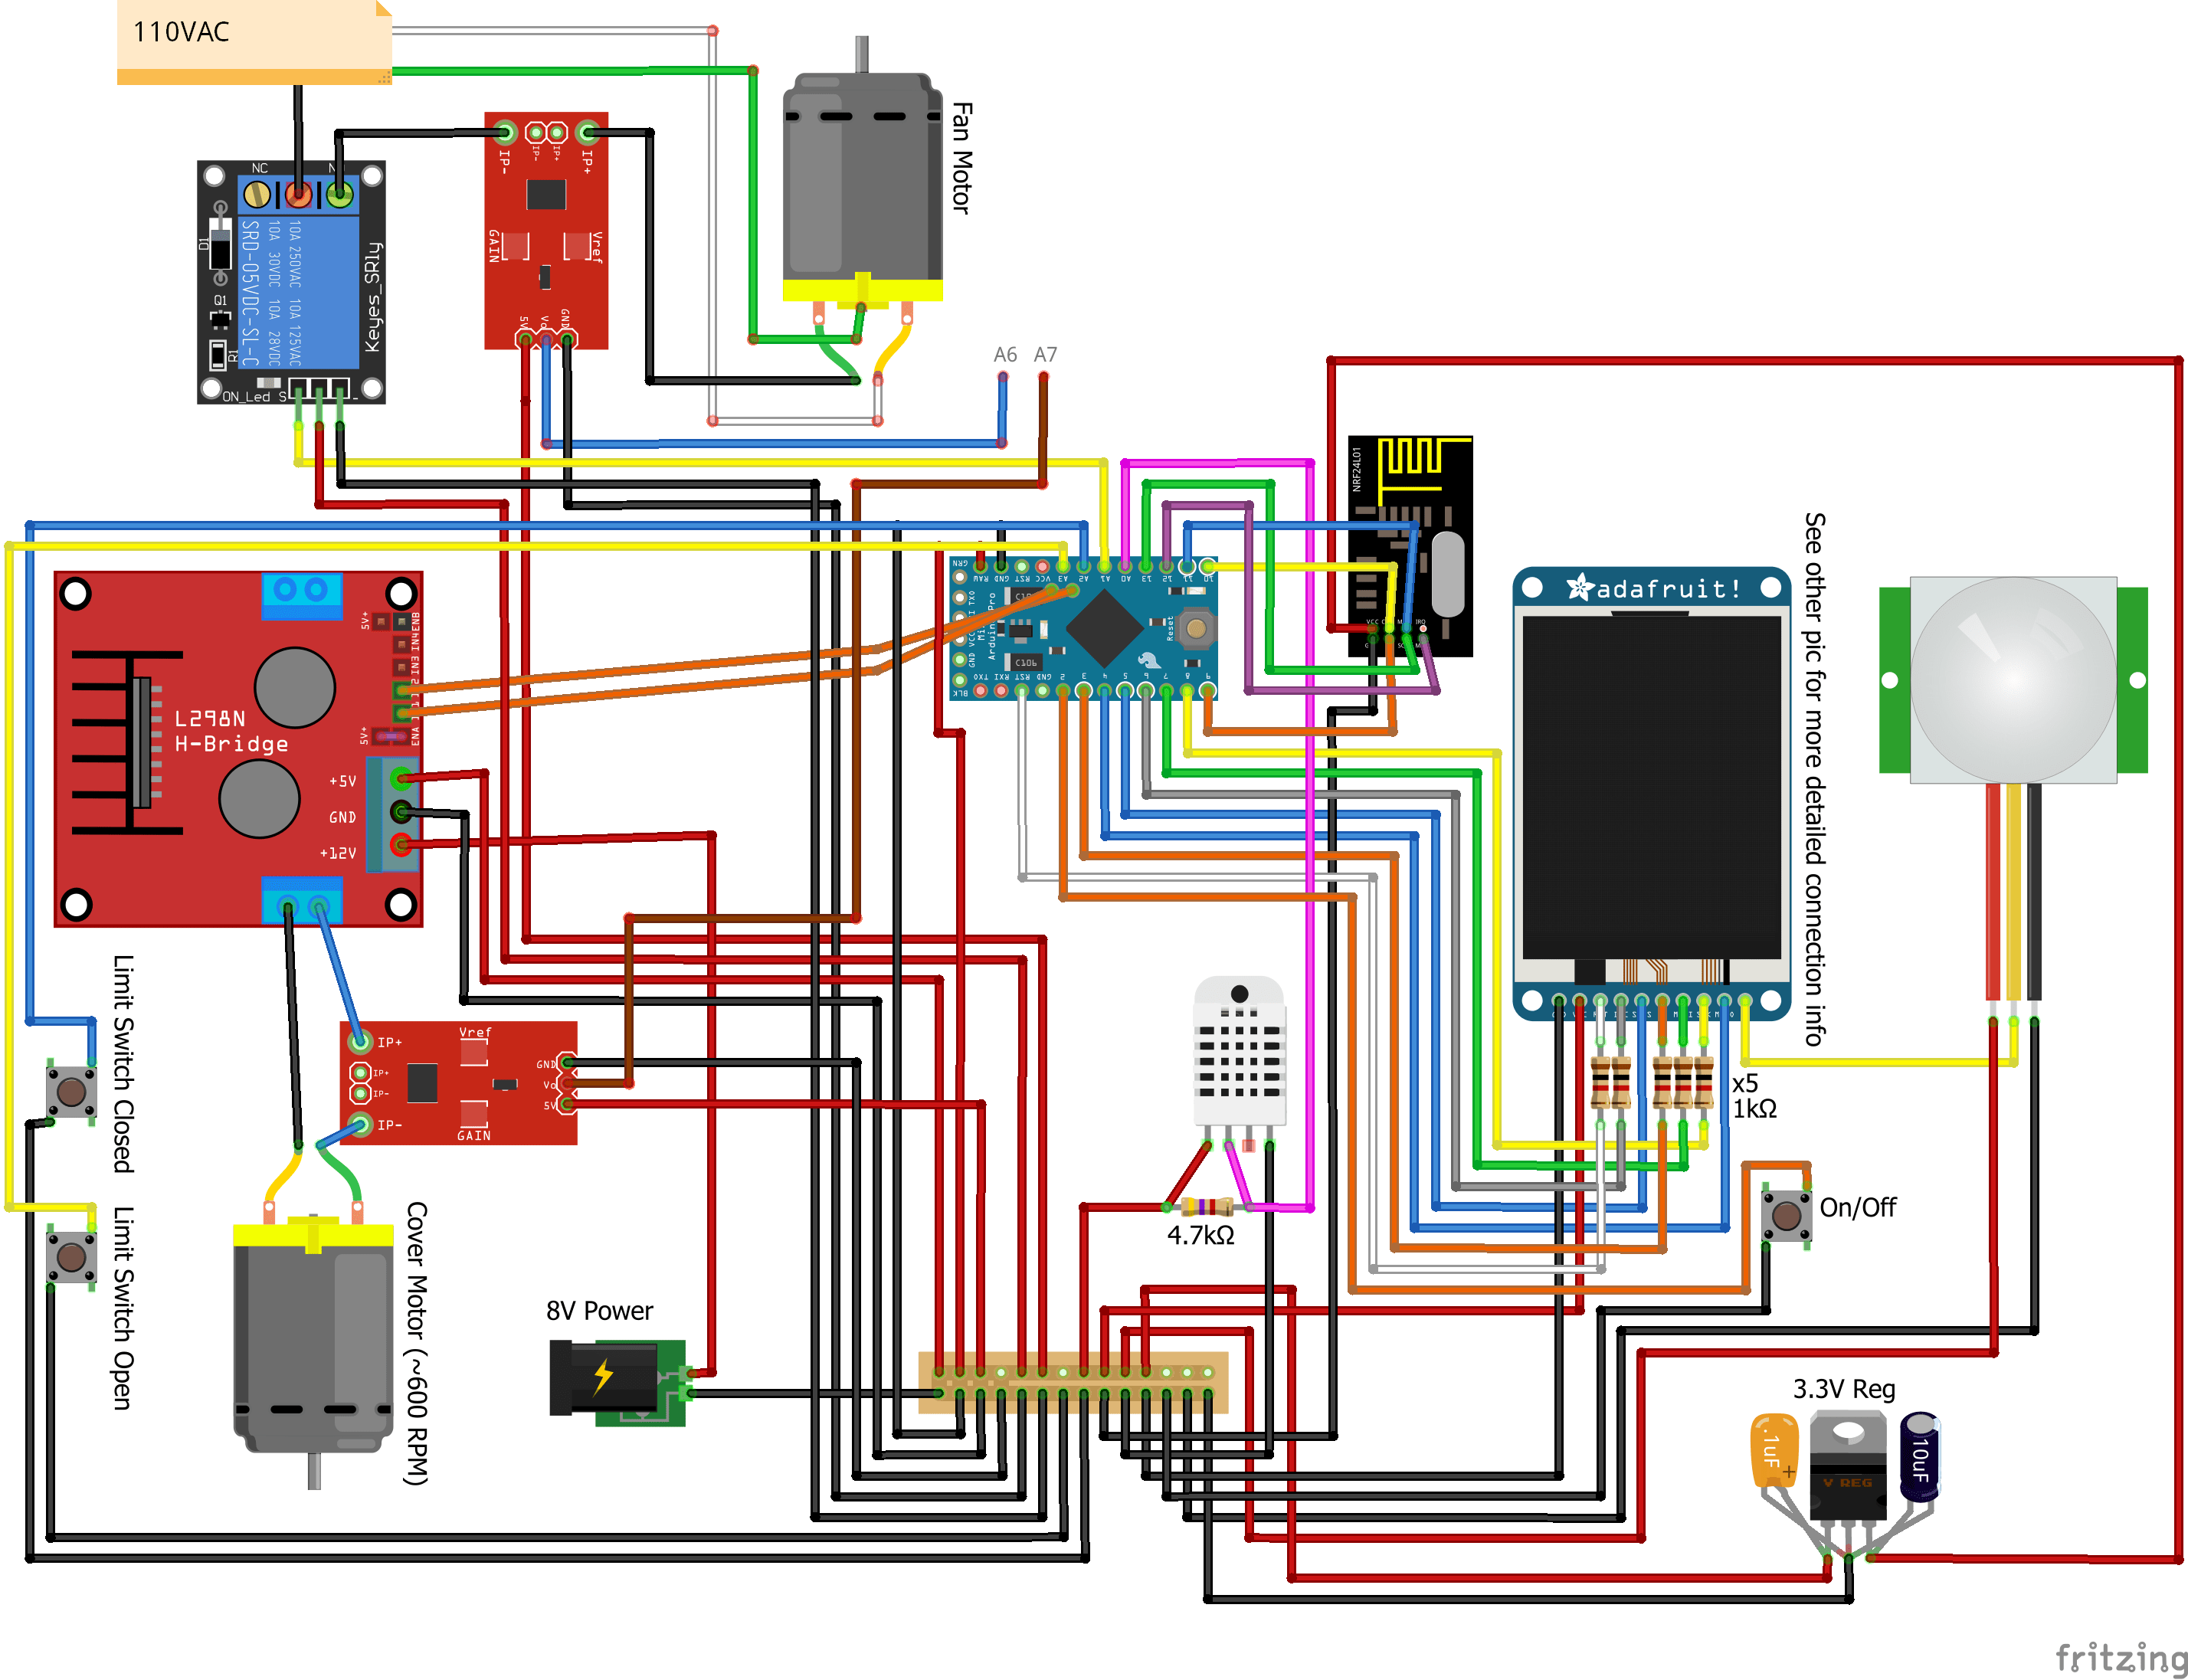 whole house fan wiring diagram 3 way switch split receptacle insulated openhardware io enables open